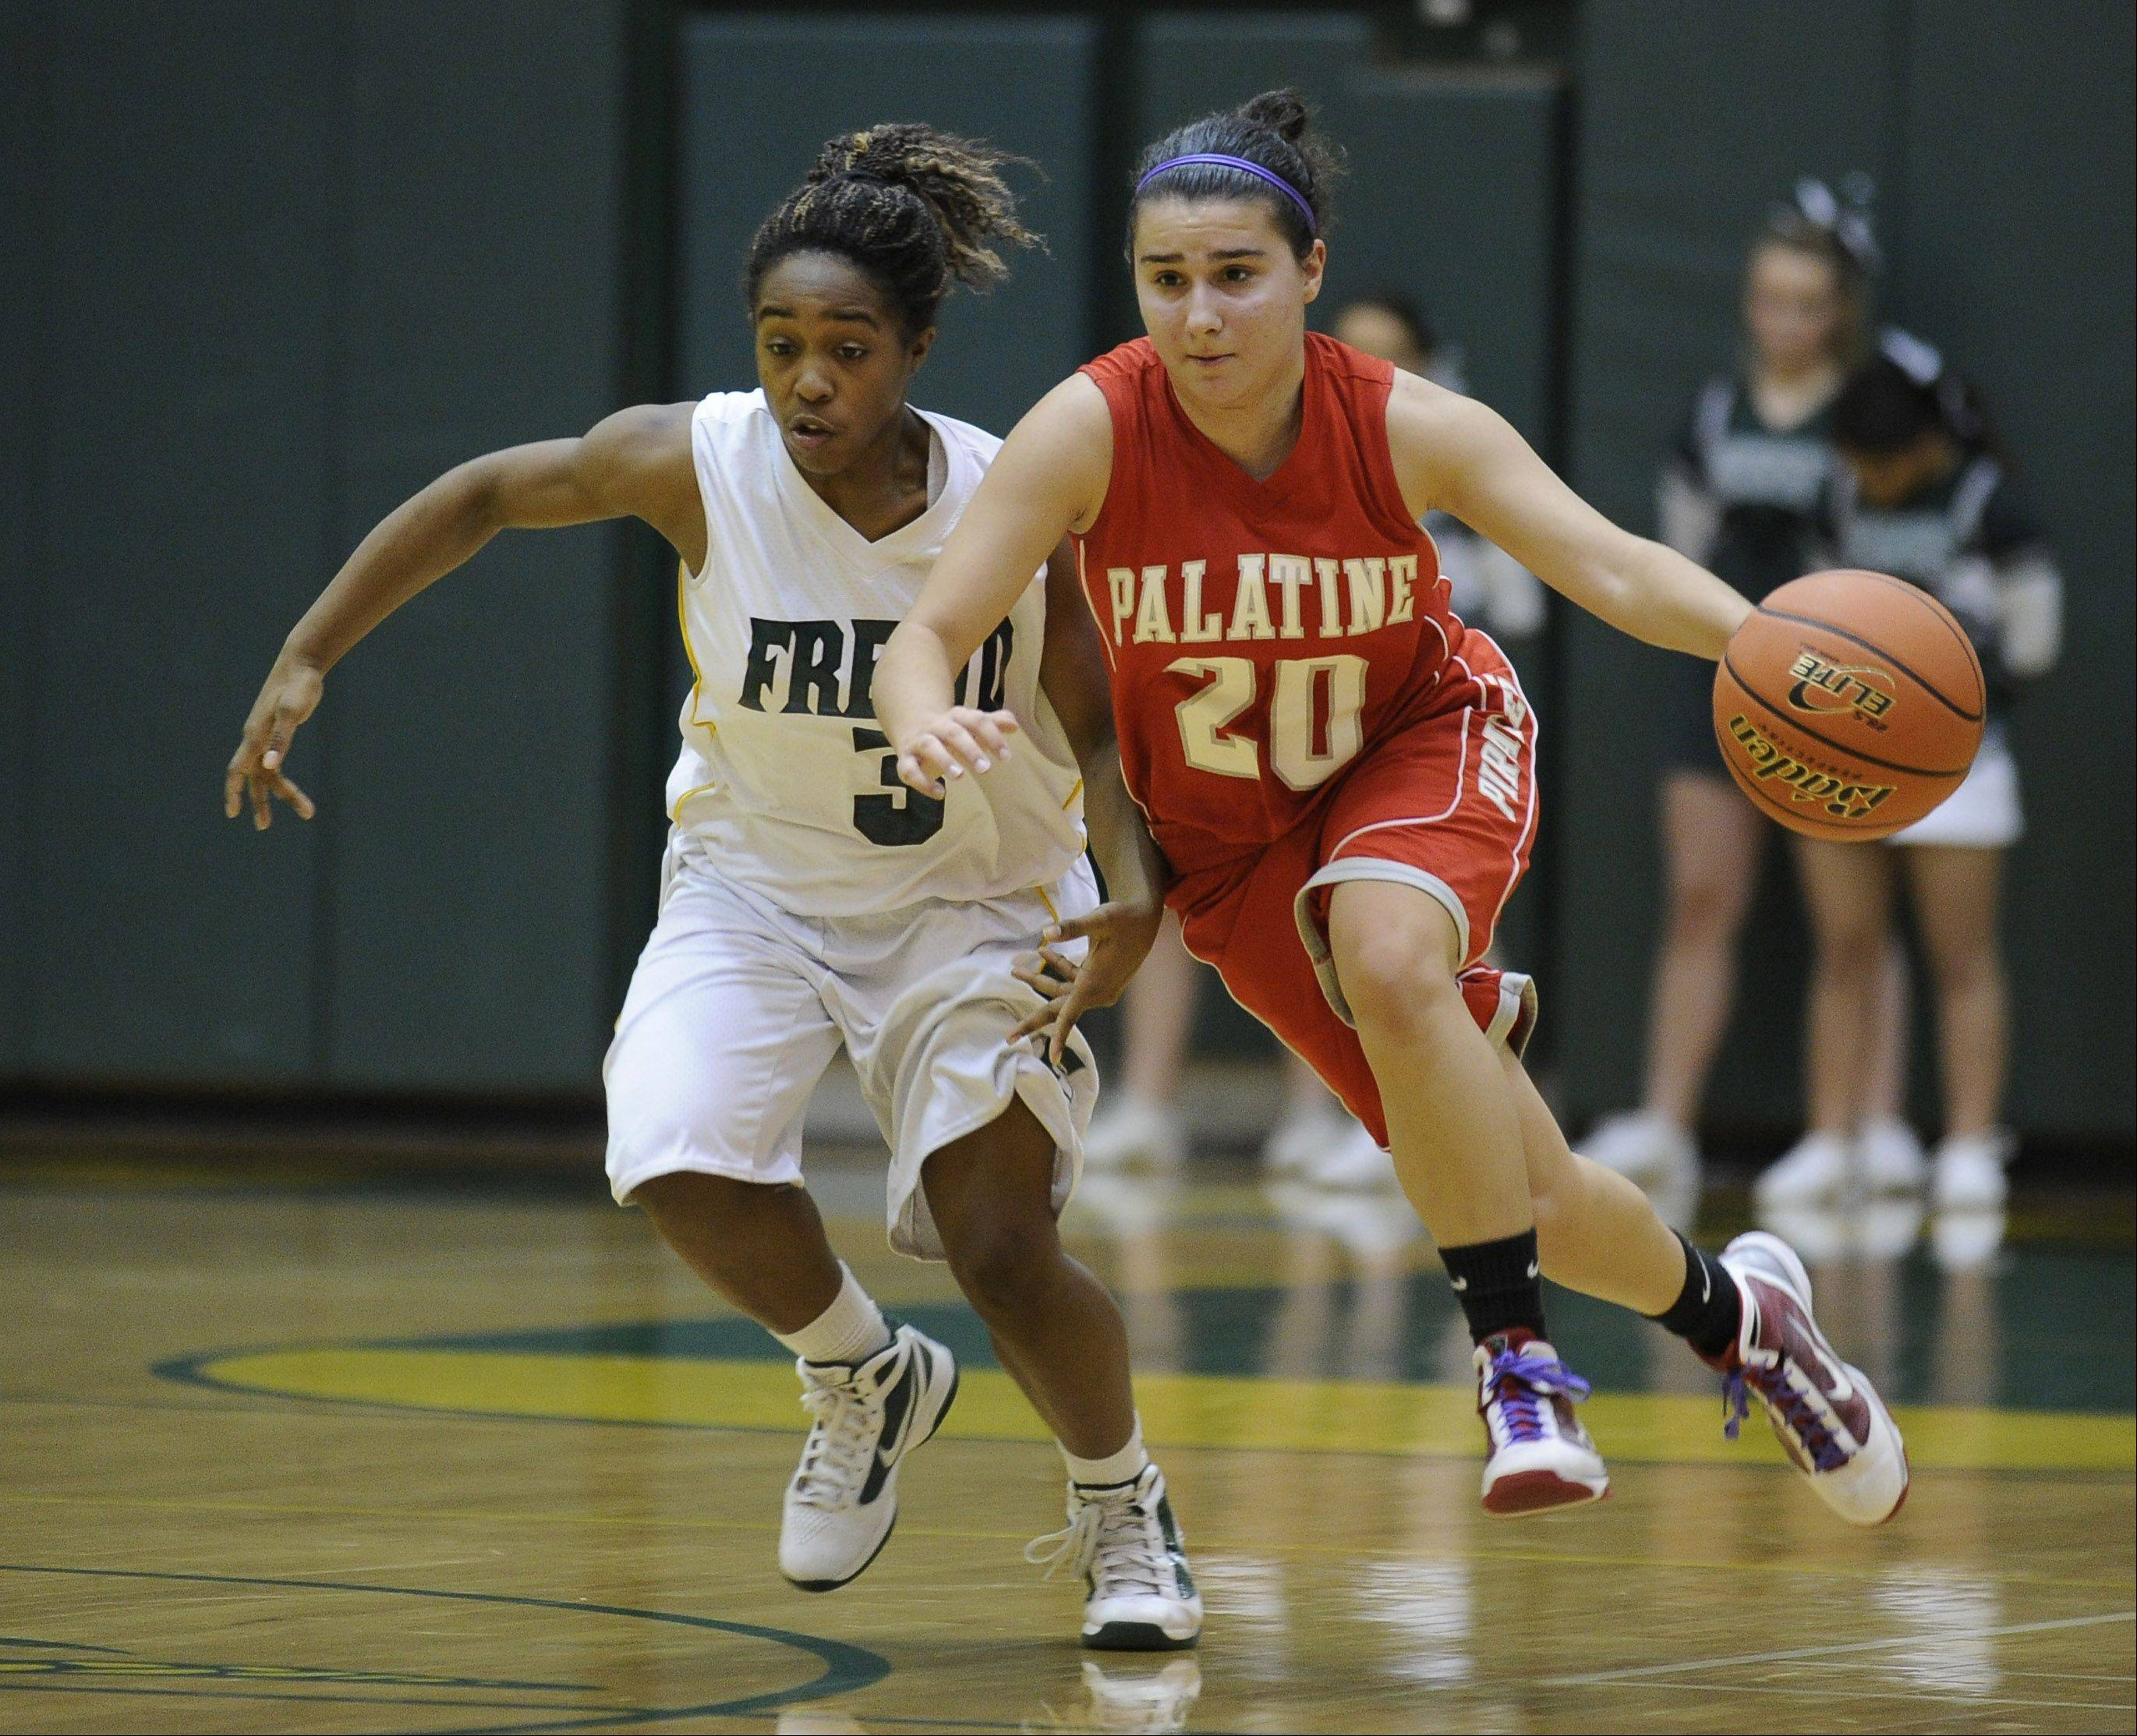 Palatine's Nia Pappas heads down court under pressure from Fremd's Brianna Lewis in the second half.